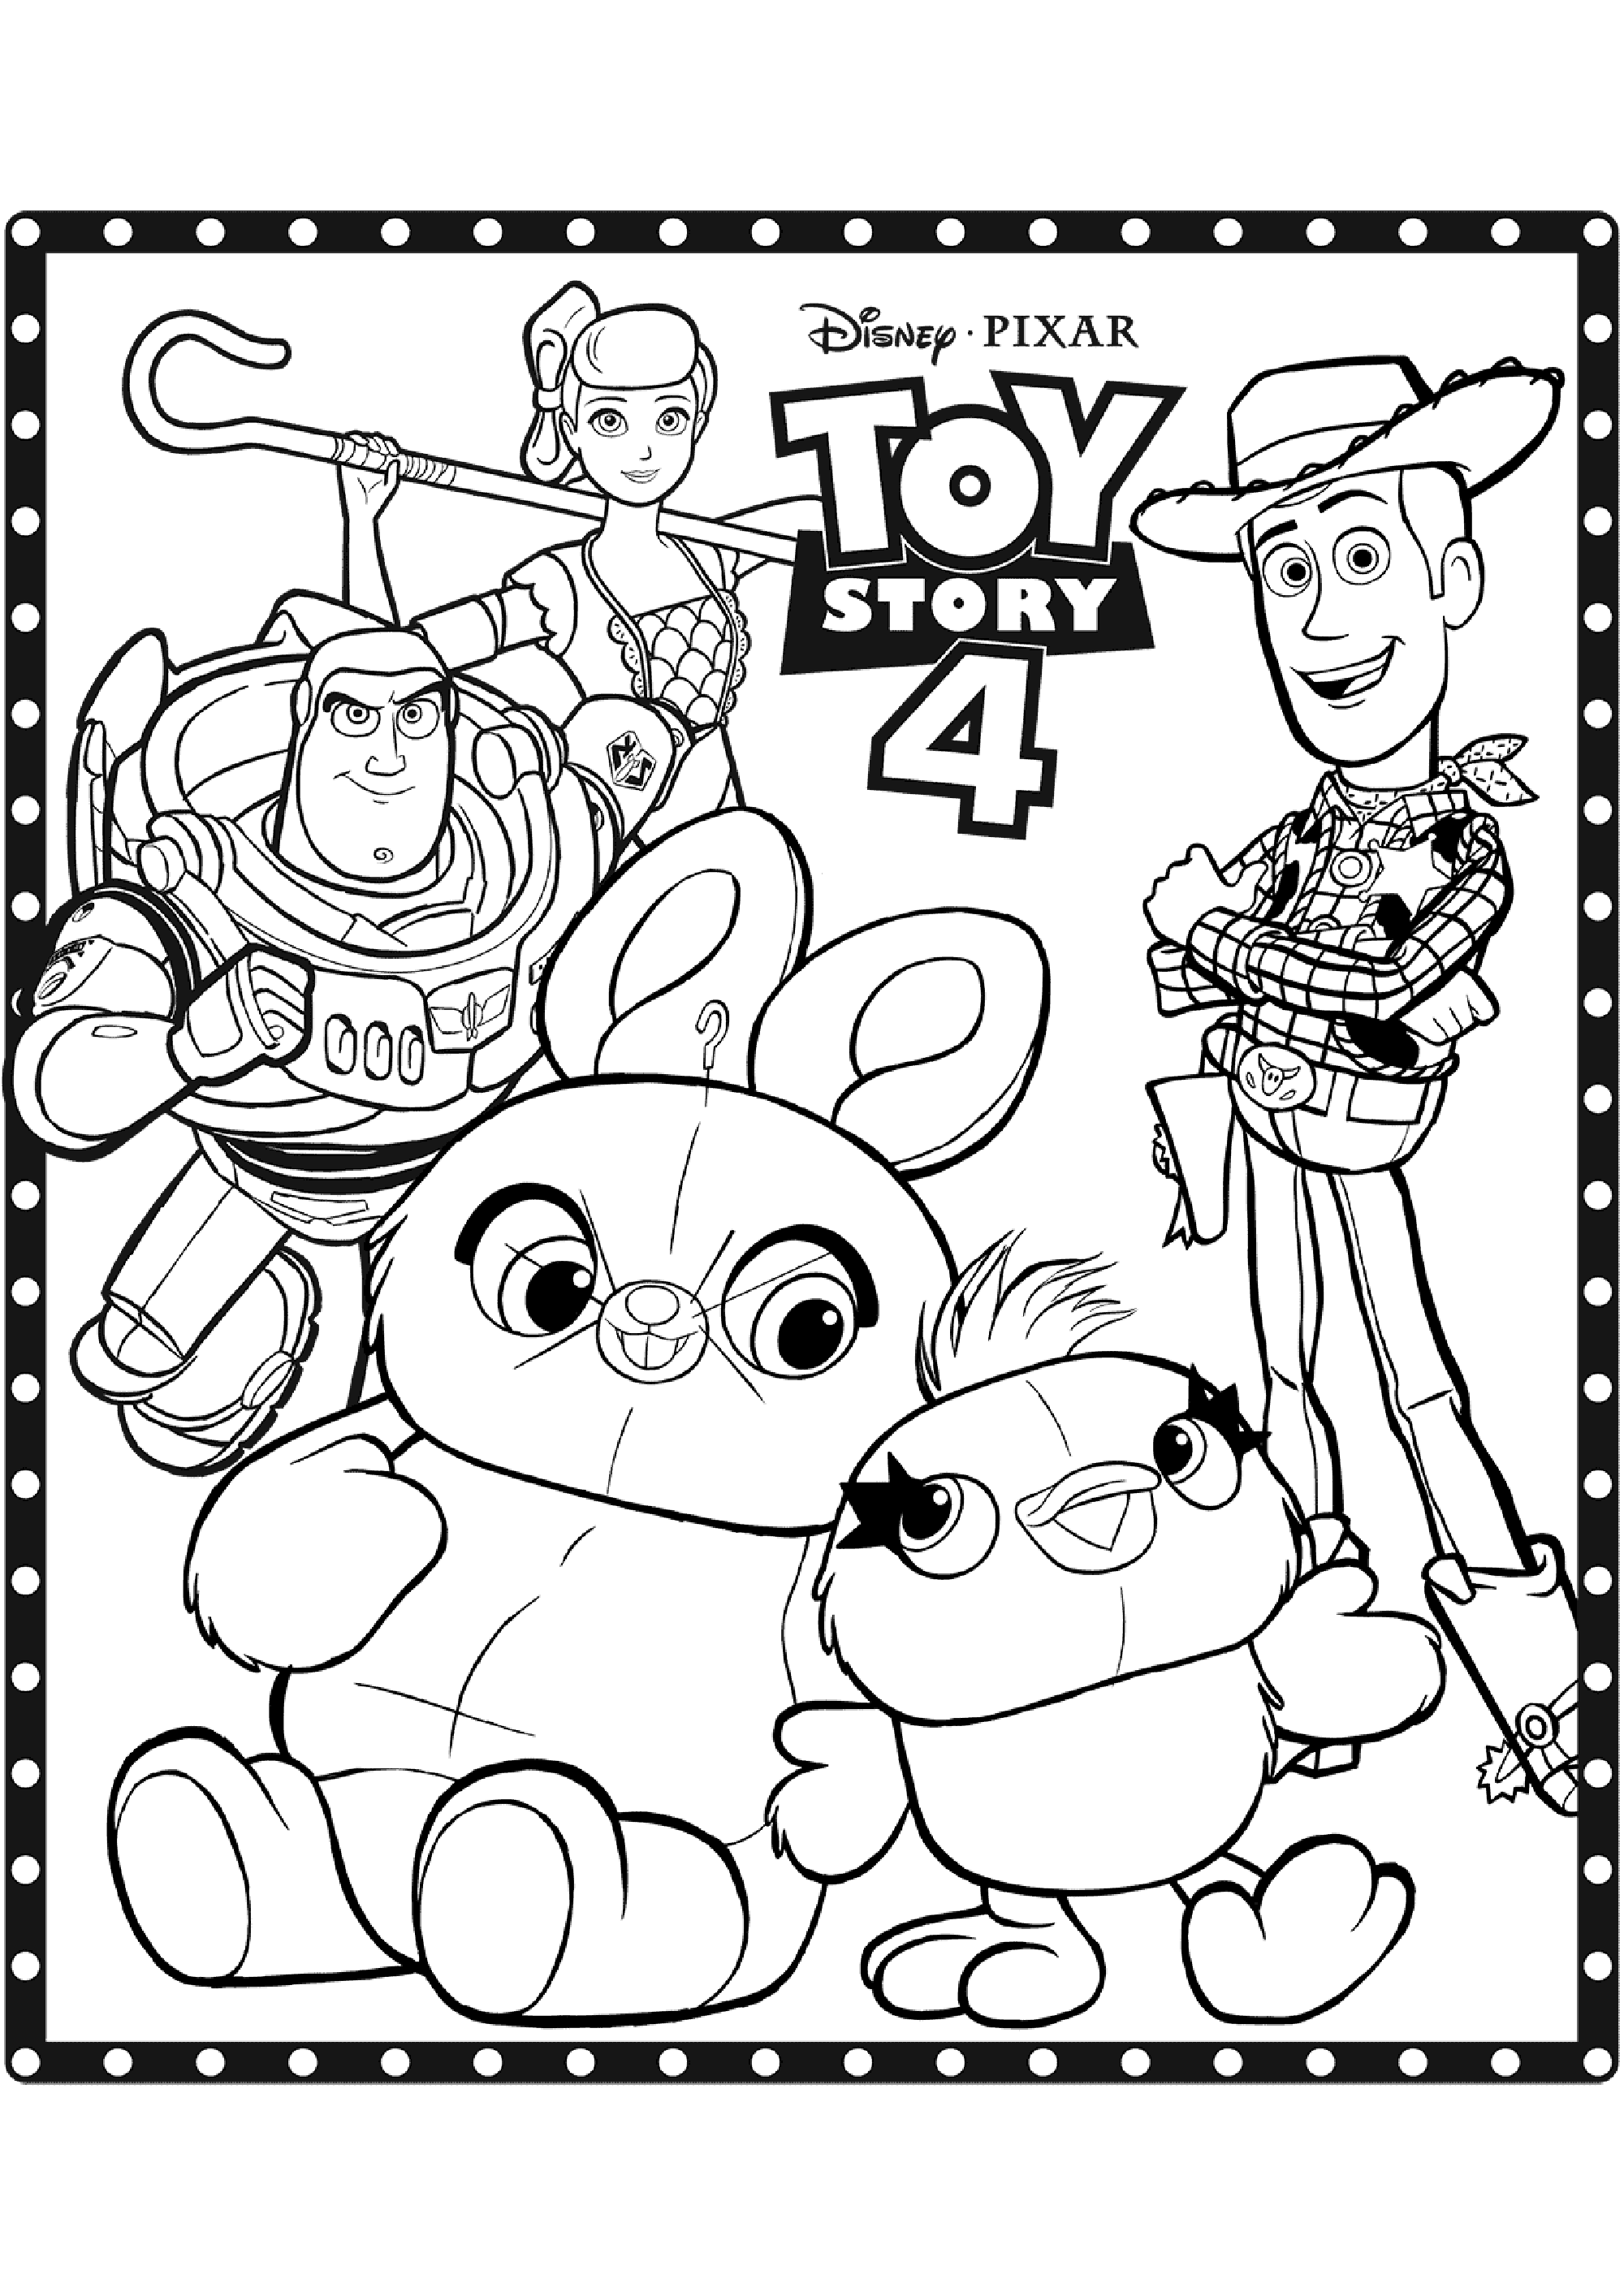 Disney Pixar Printable Coloring Pages | Free disney coloring pages ... | 2828x2000